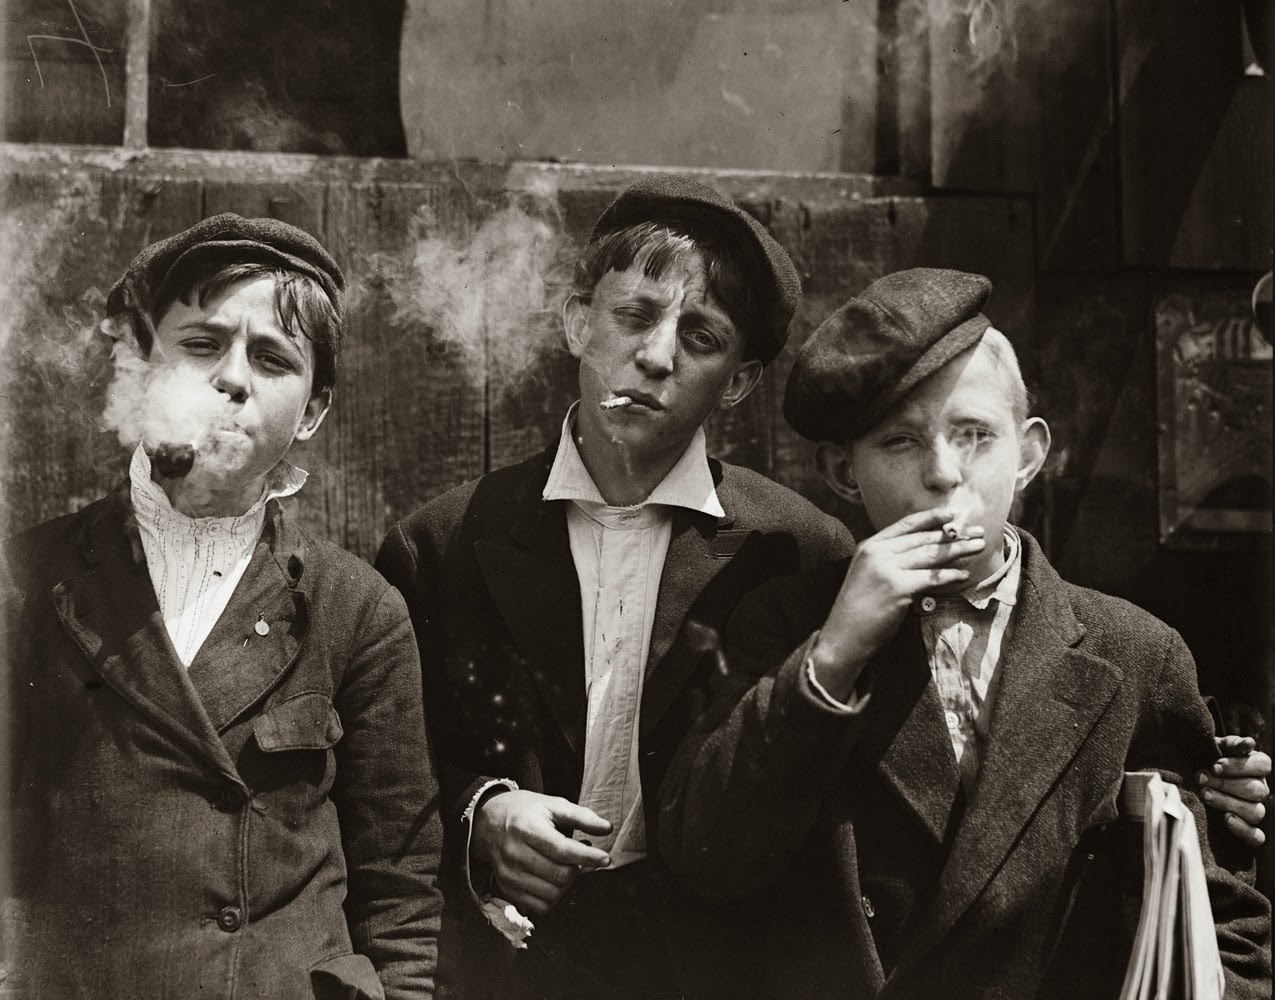 Newsies at Skeeter's Branch. They were all smoking. St. Louis, Missouri. 1910